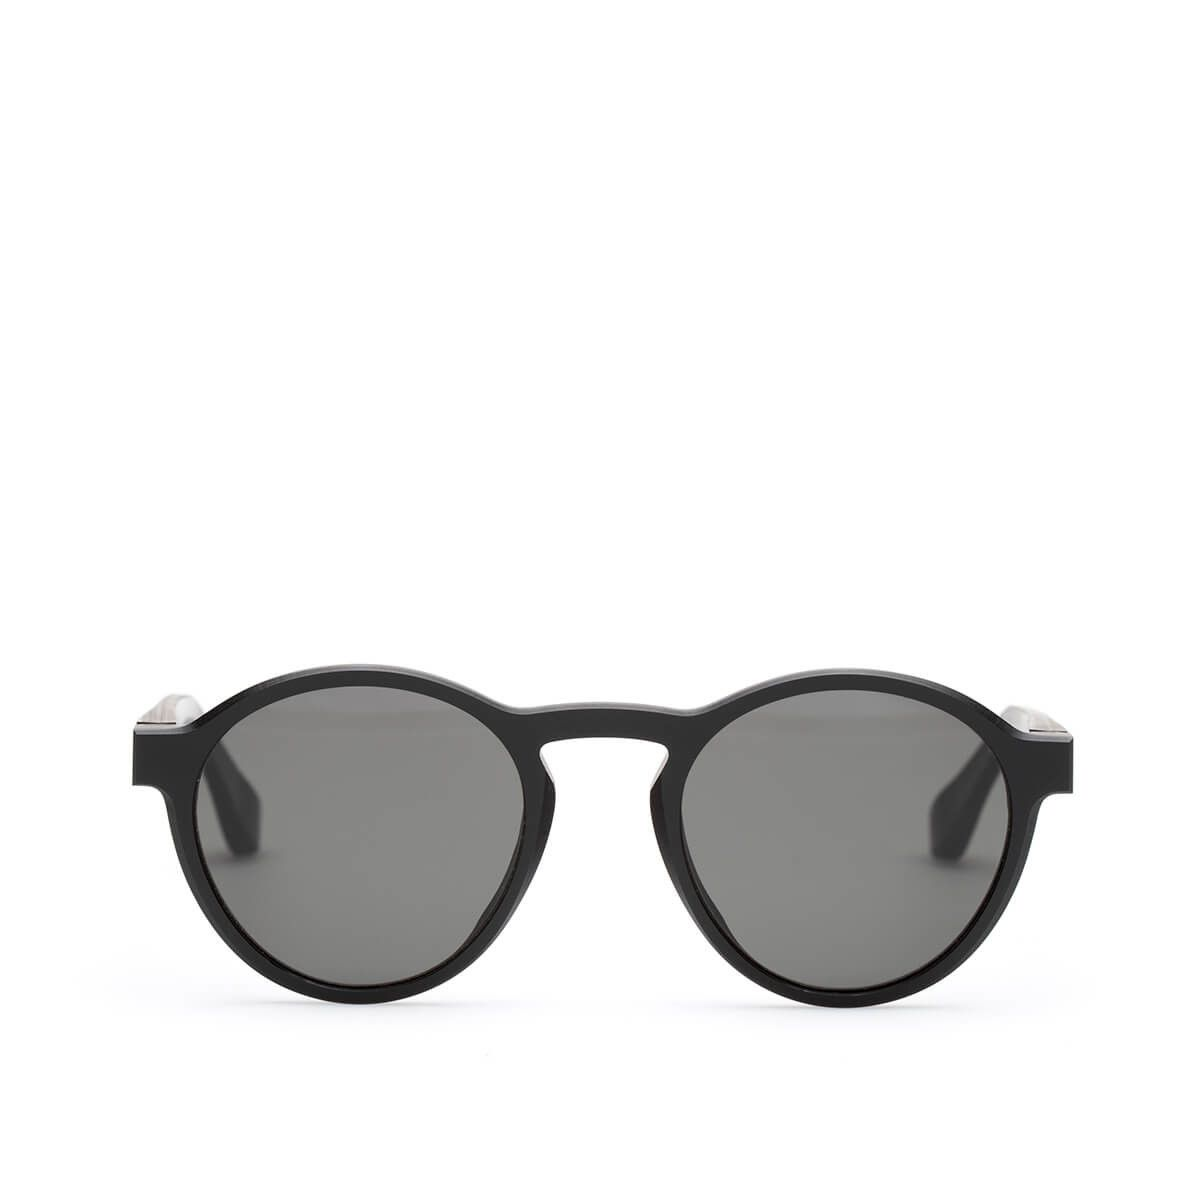 be911f3d9519 MMRAW002 sunglasses from Mykita collection in collaboration with Maison  Margiela in black